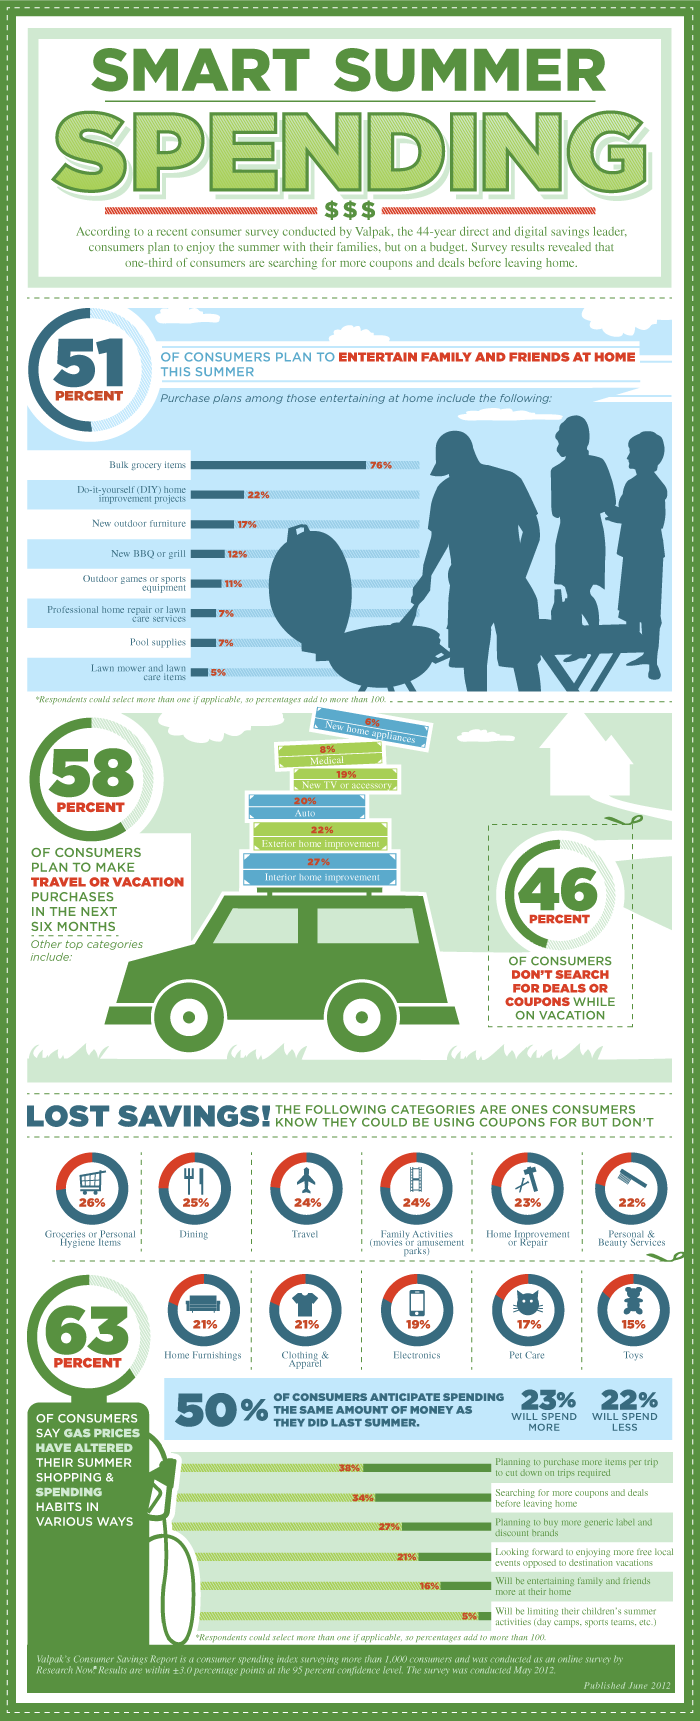 Valpak.com Summer Savings Survey Infographic